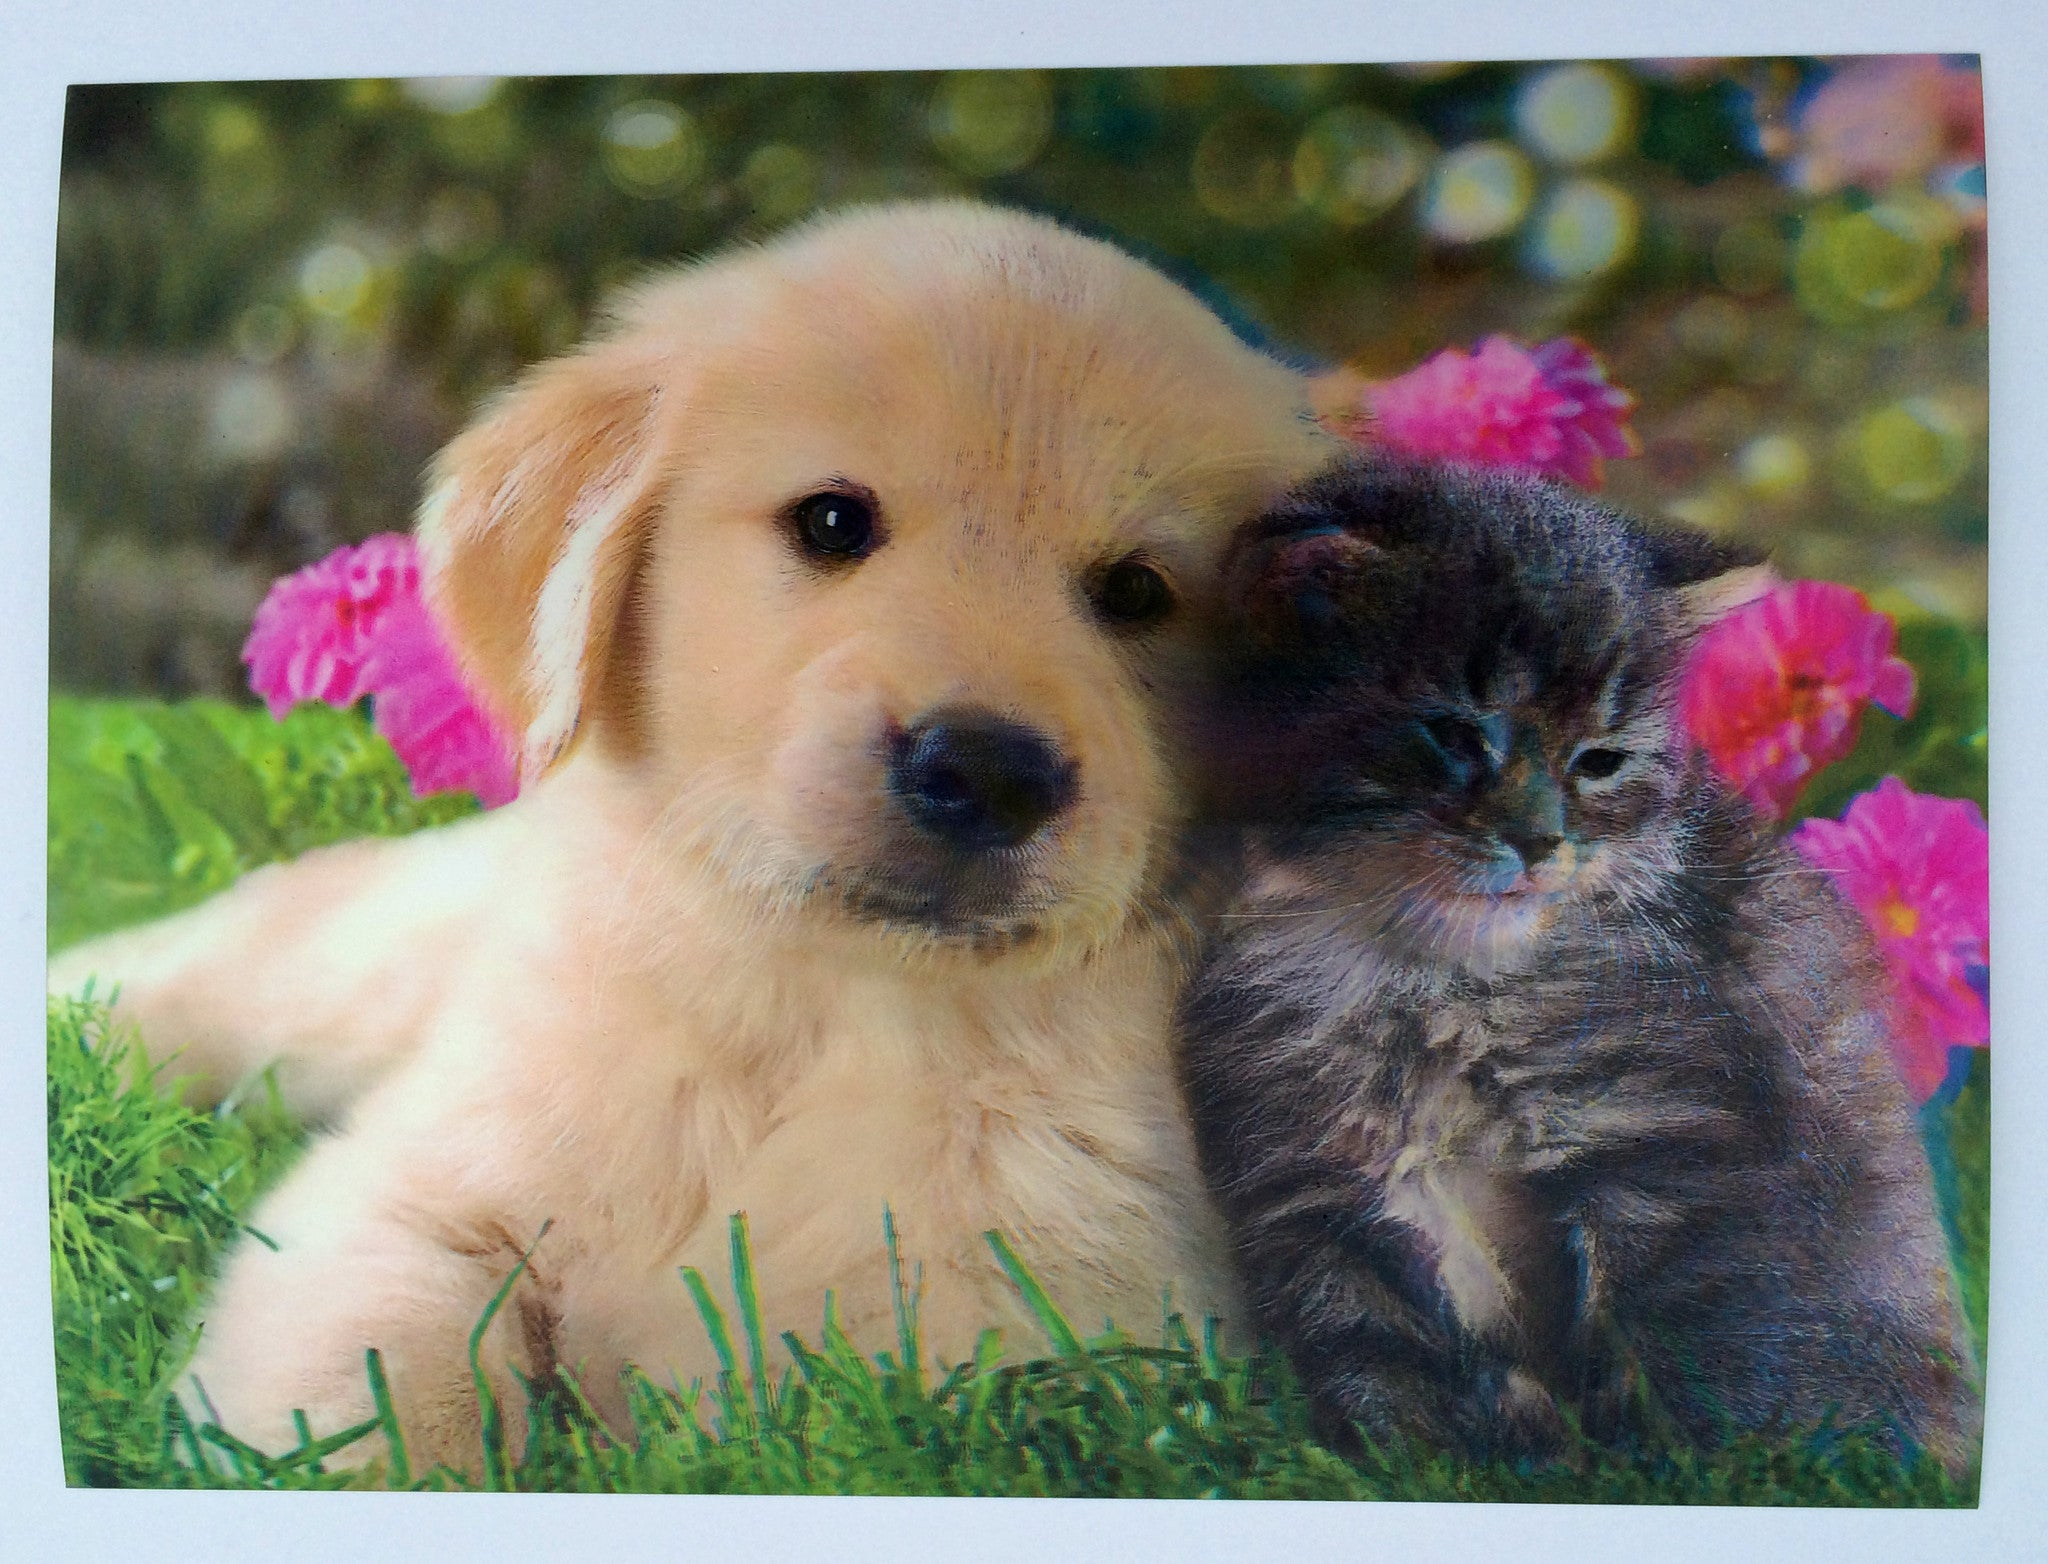 DC-16 Puppy and Kitten 1 3D Picture | 3DDDpictures.com